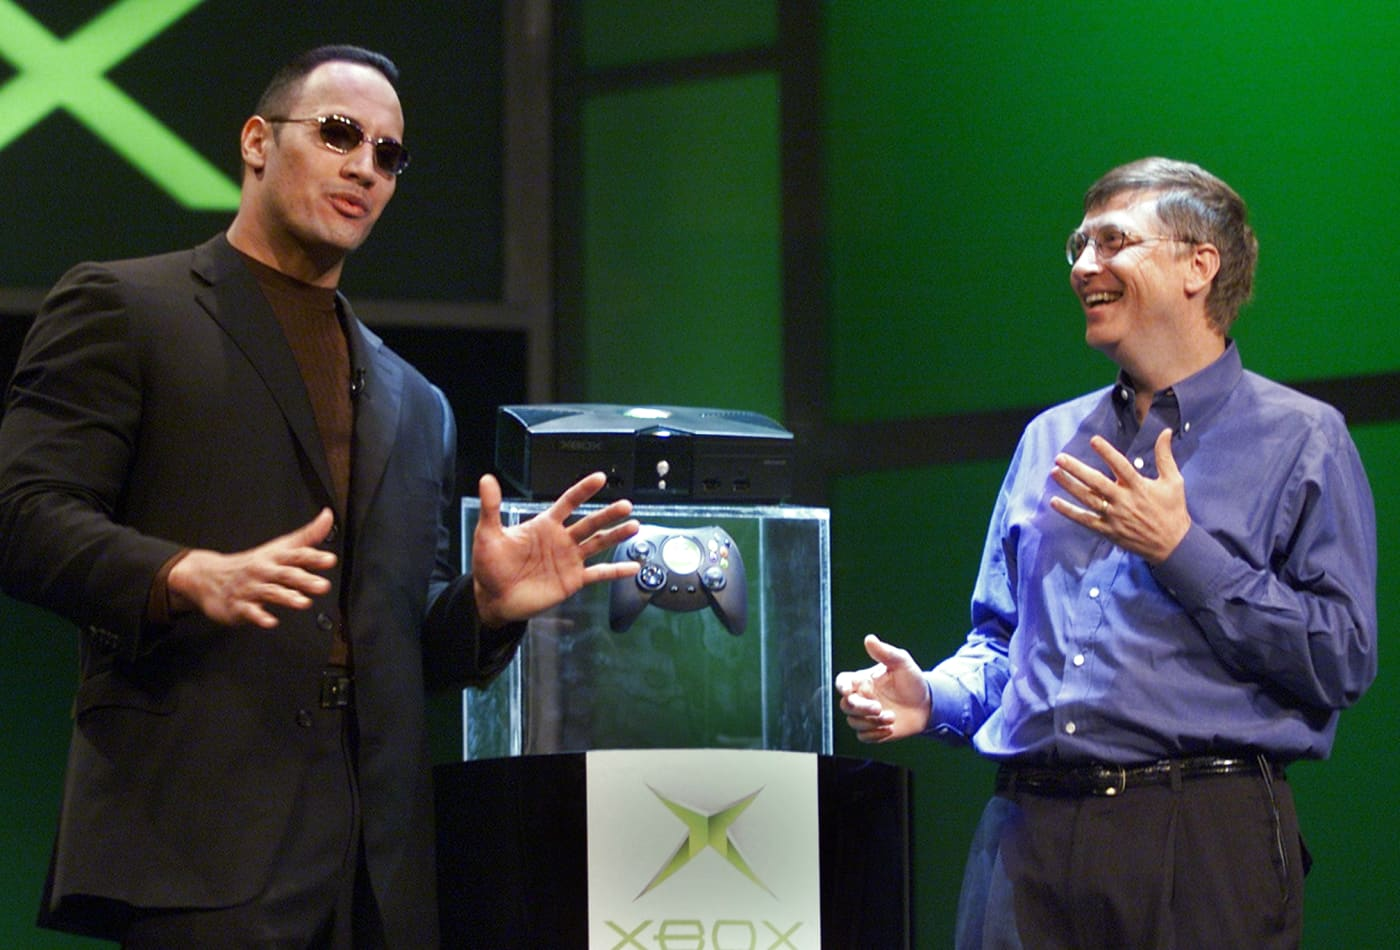 Dwayne 'The Rock' Johnson shares video of launching XBox in 2001 with his 'bud and twin' Bill Gates